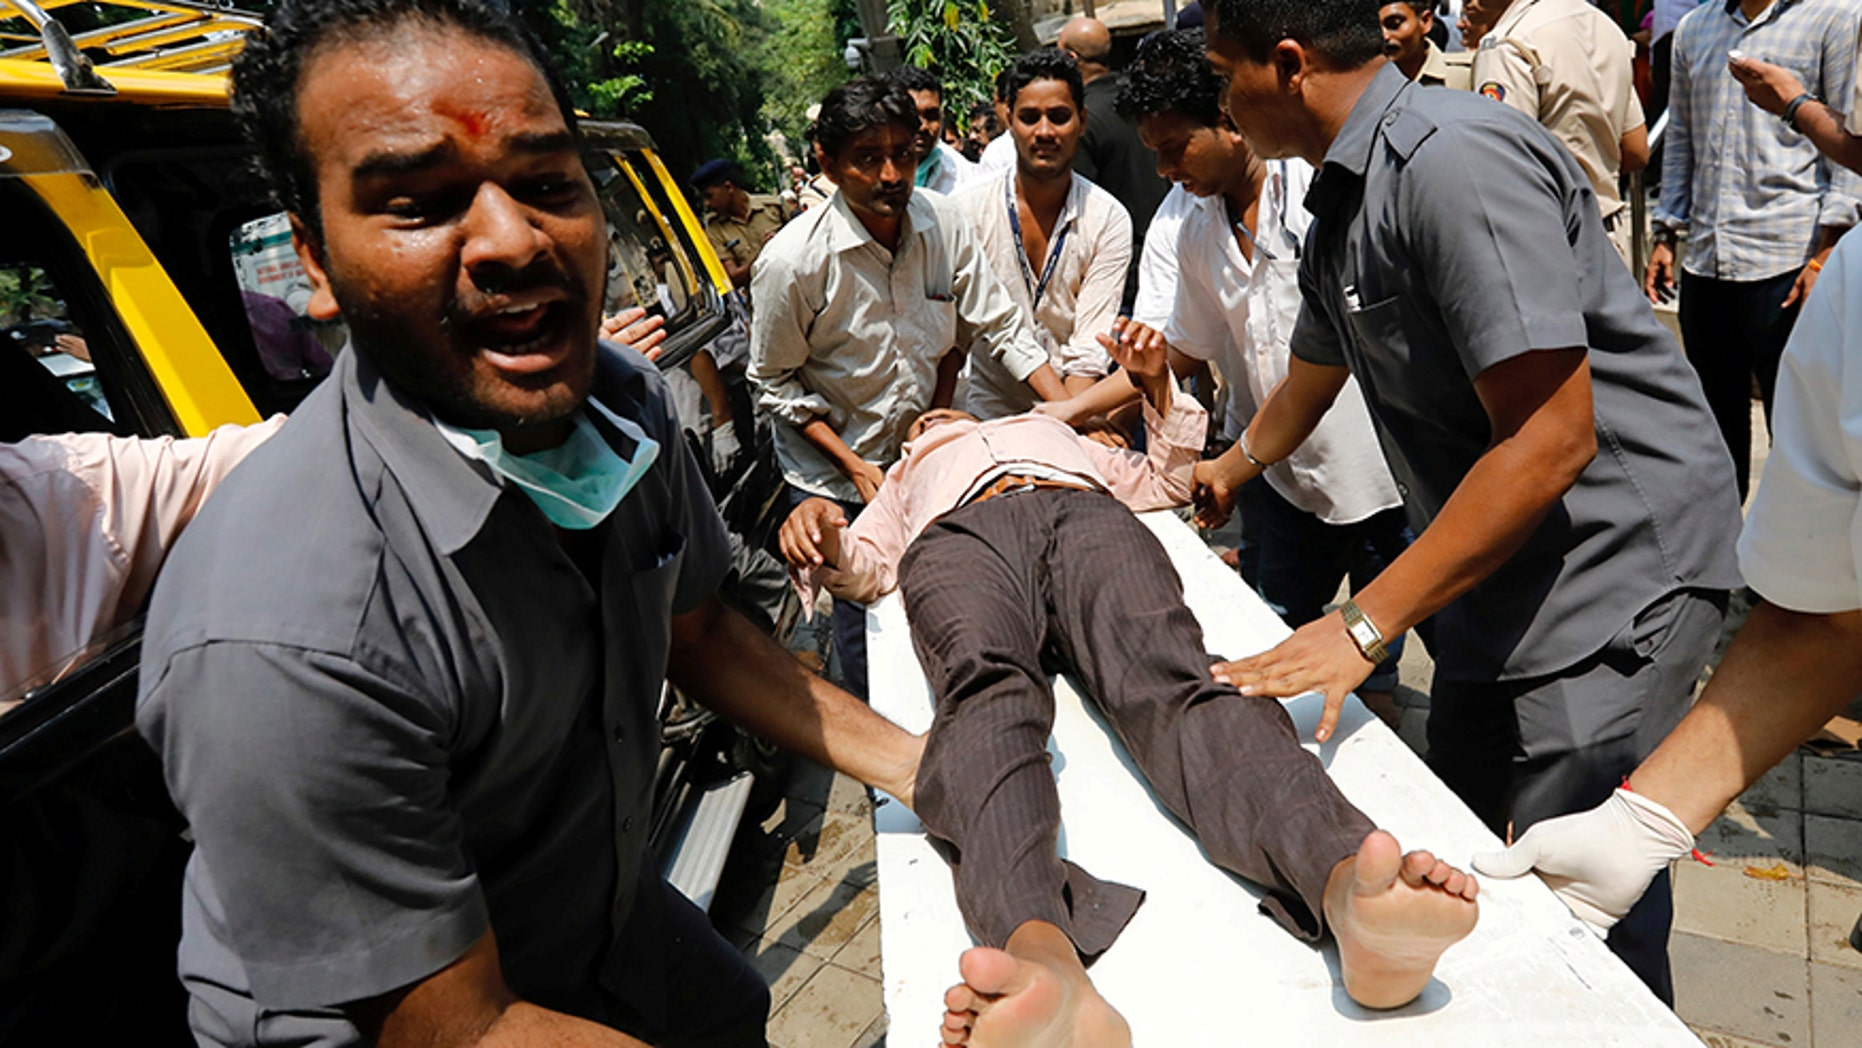 Sept. 29, 2017: A stampede victim is carried on a stretcher at a hospital in Mumbai, India.